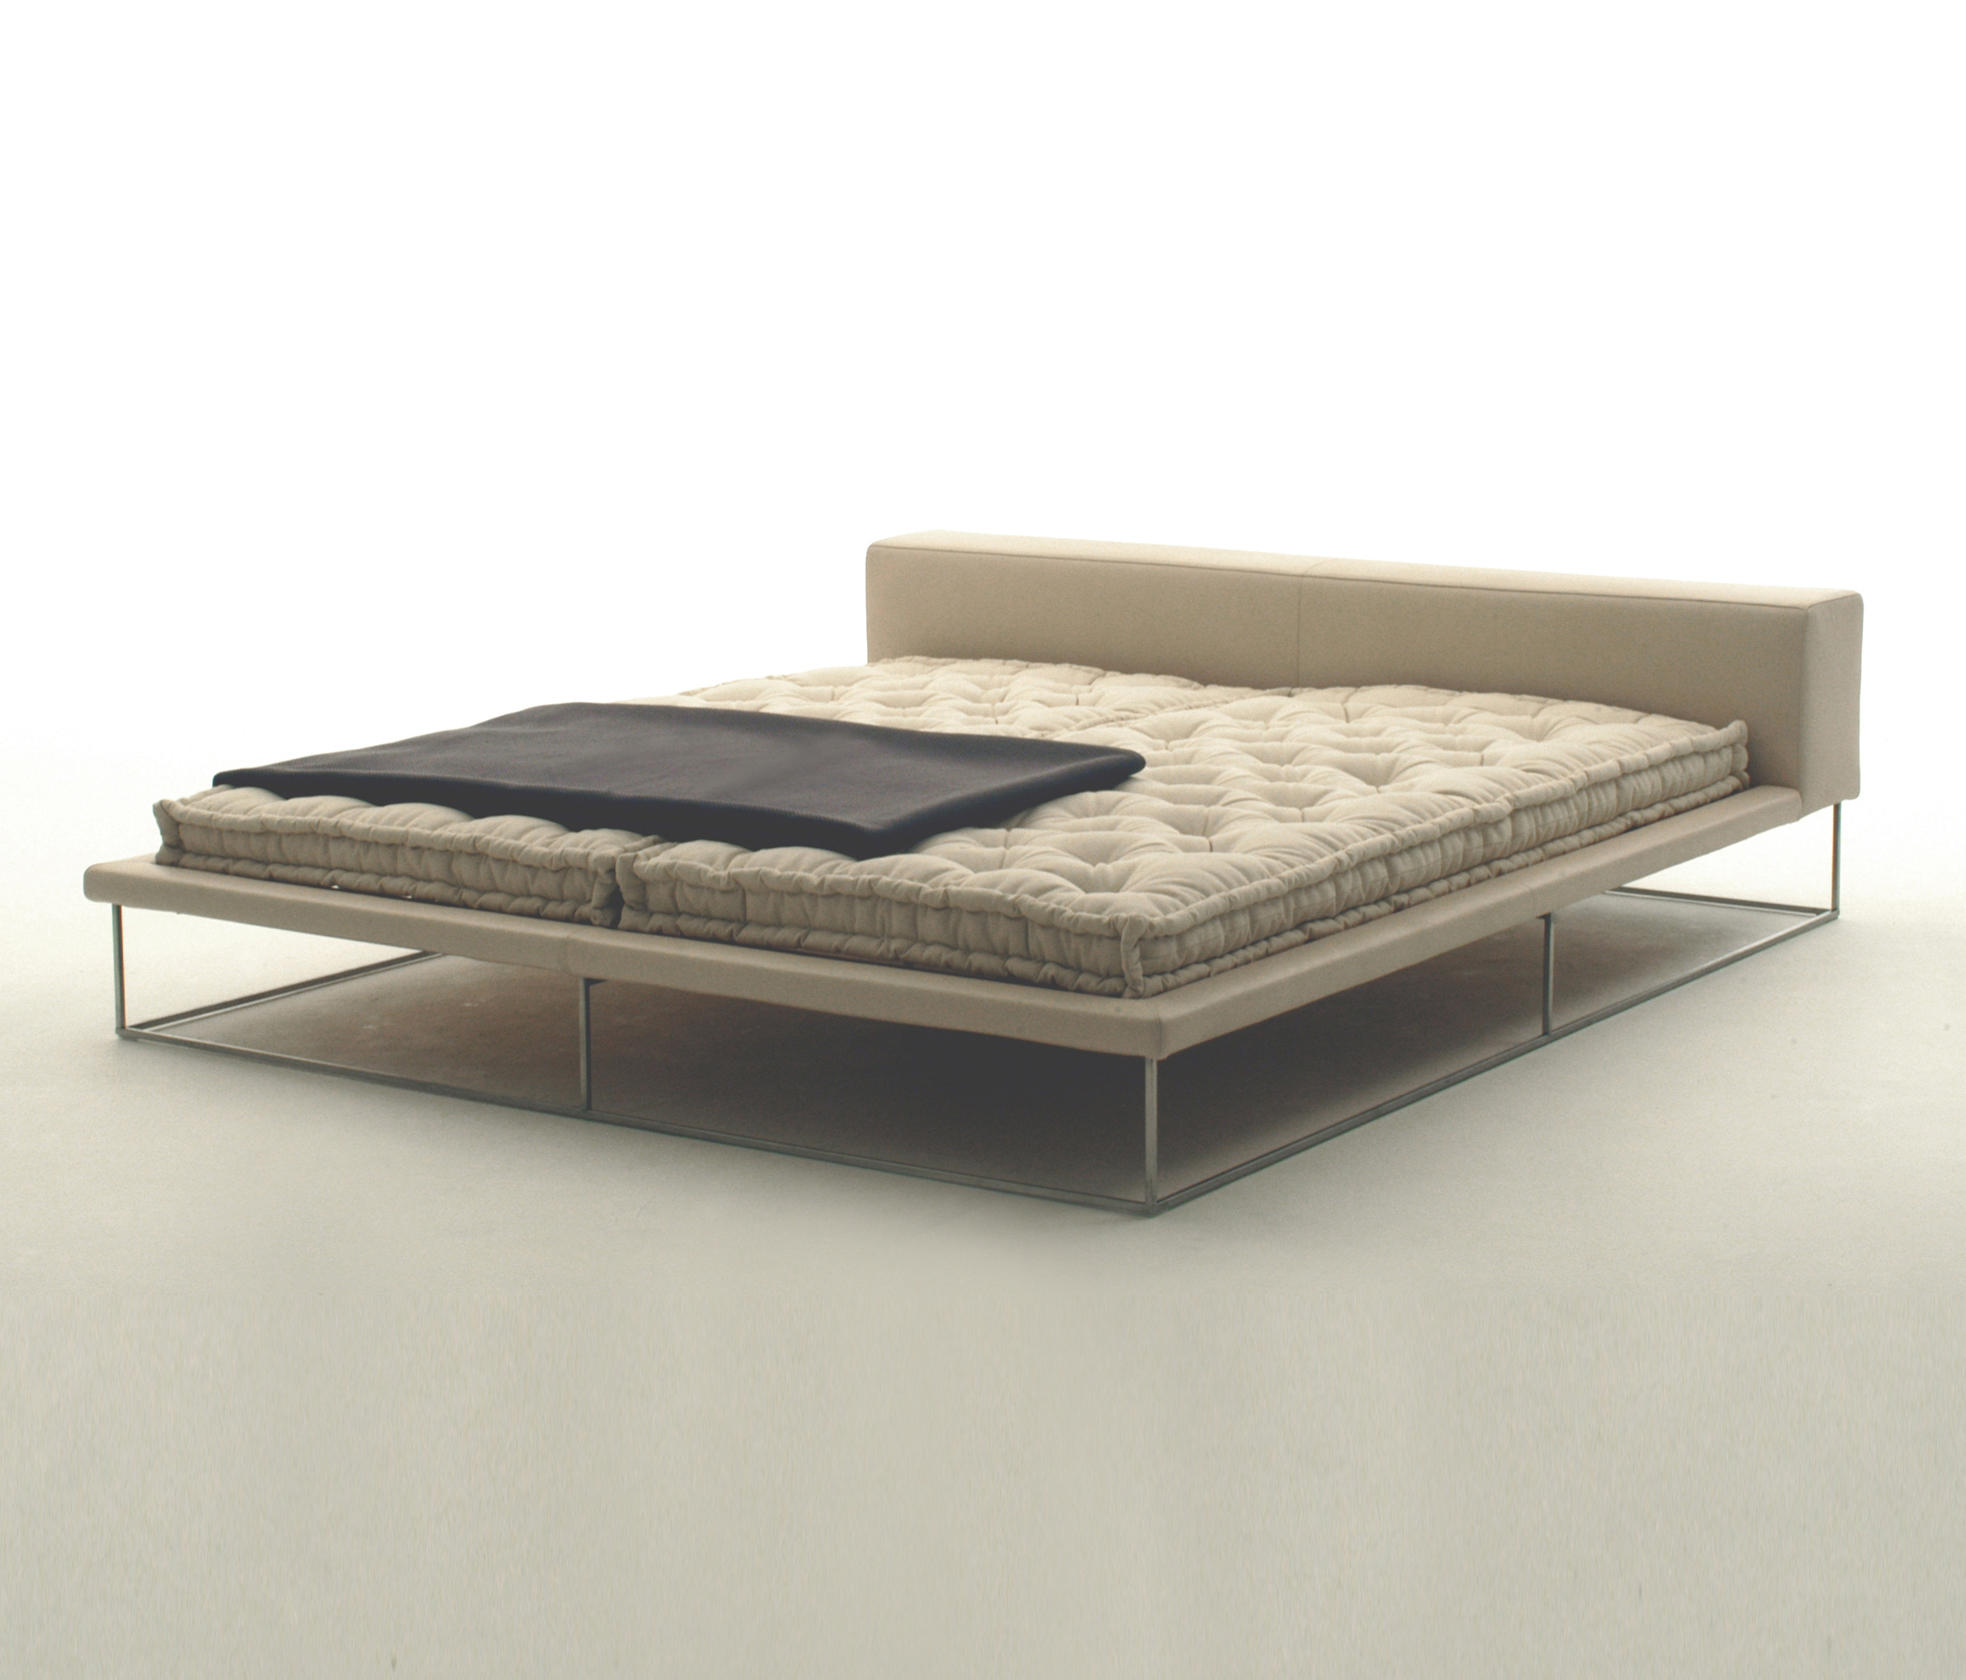 Living Divani Bed Ile Bed - Double Beds From Living Divani | Architonic